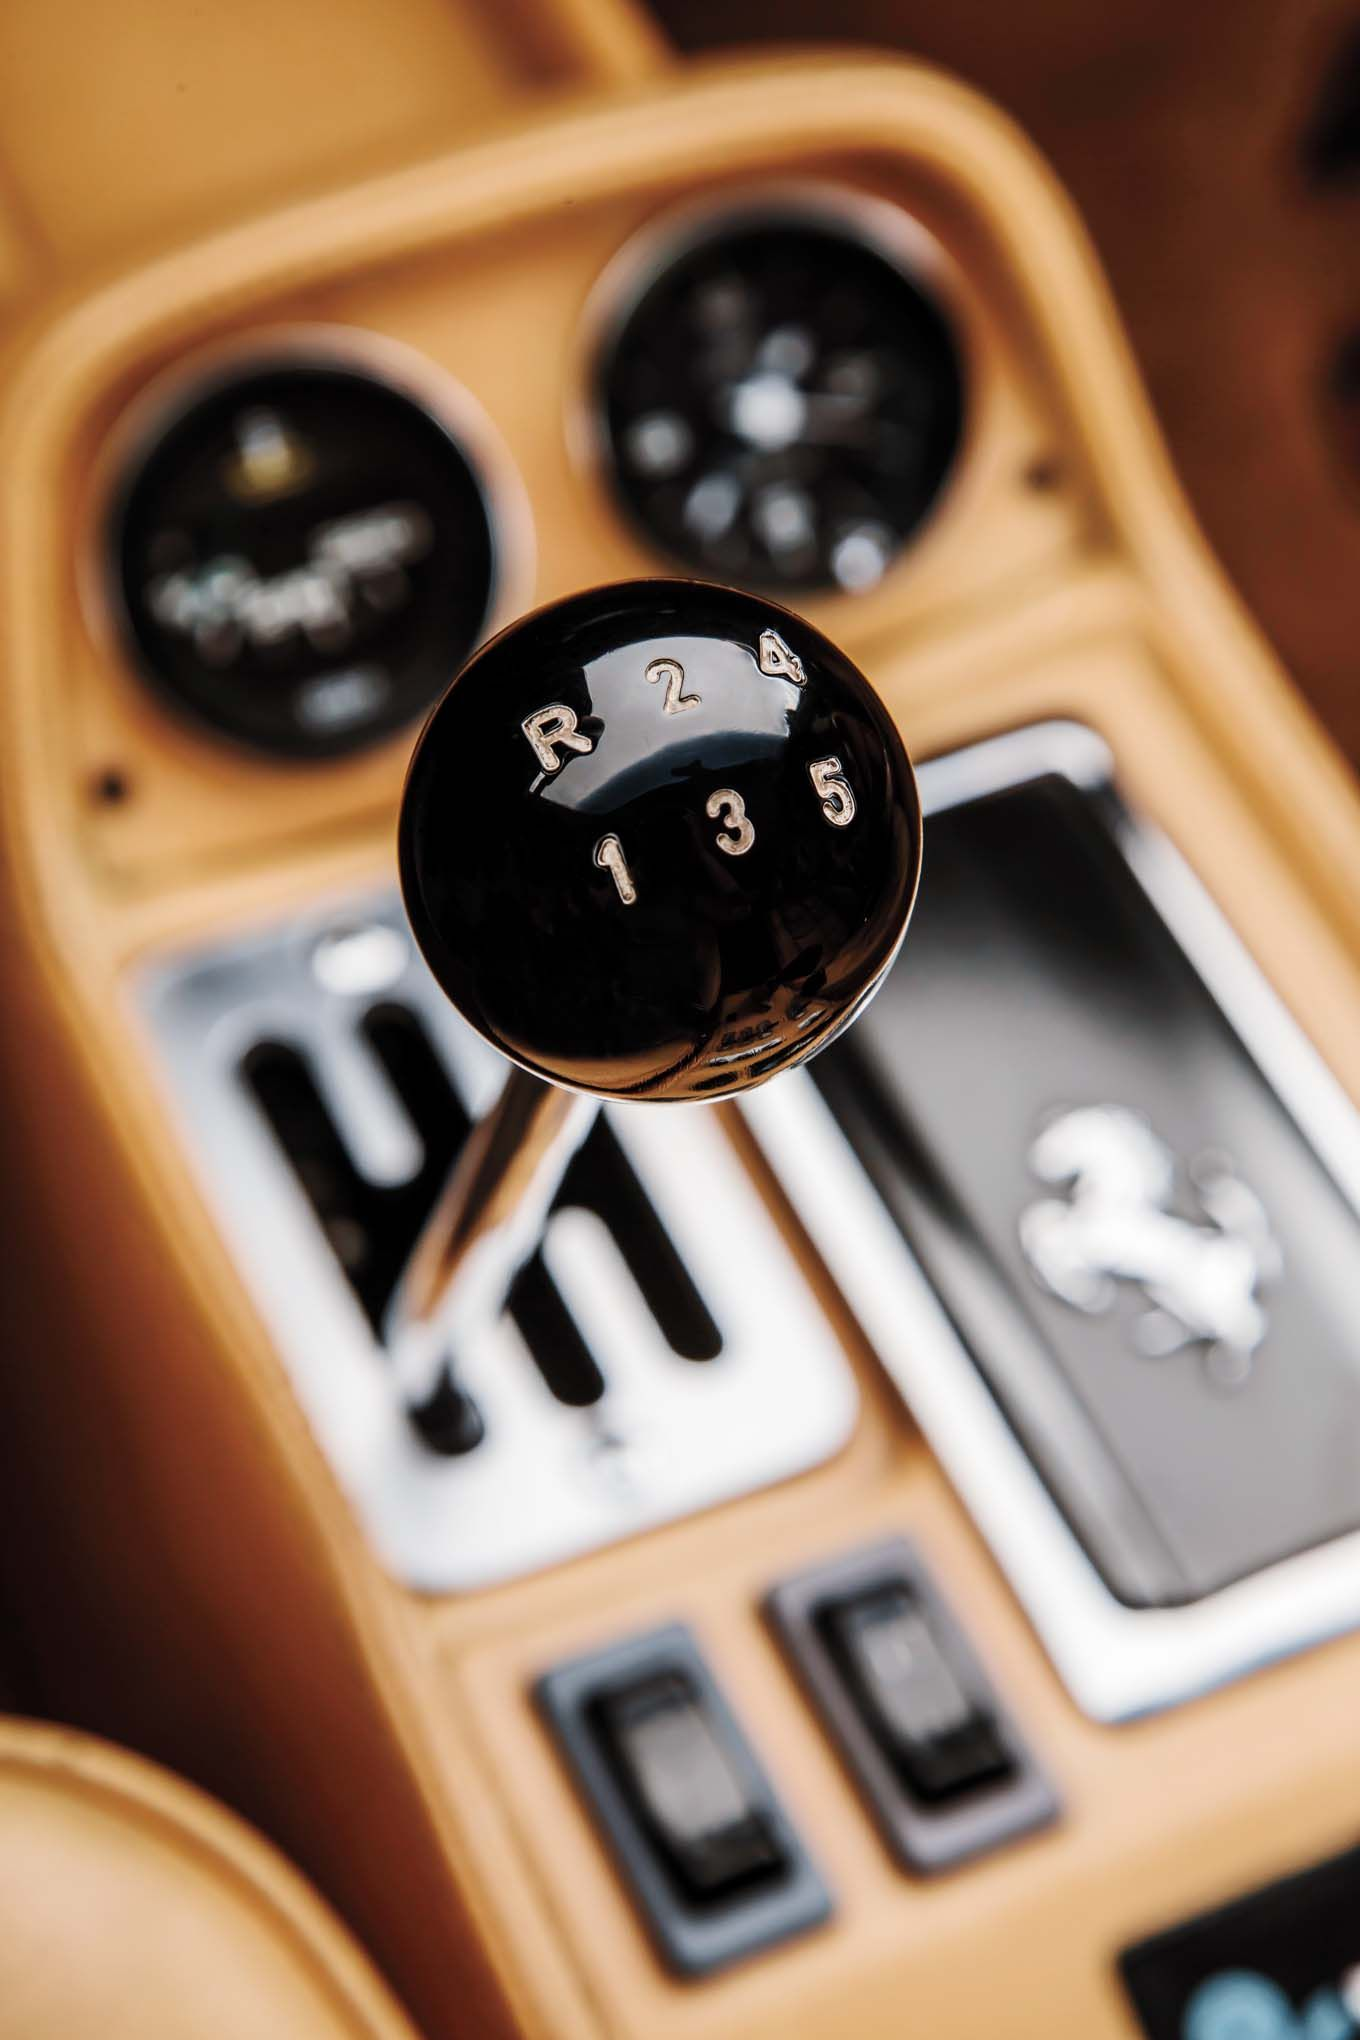 Ferrari gear shift